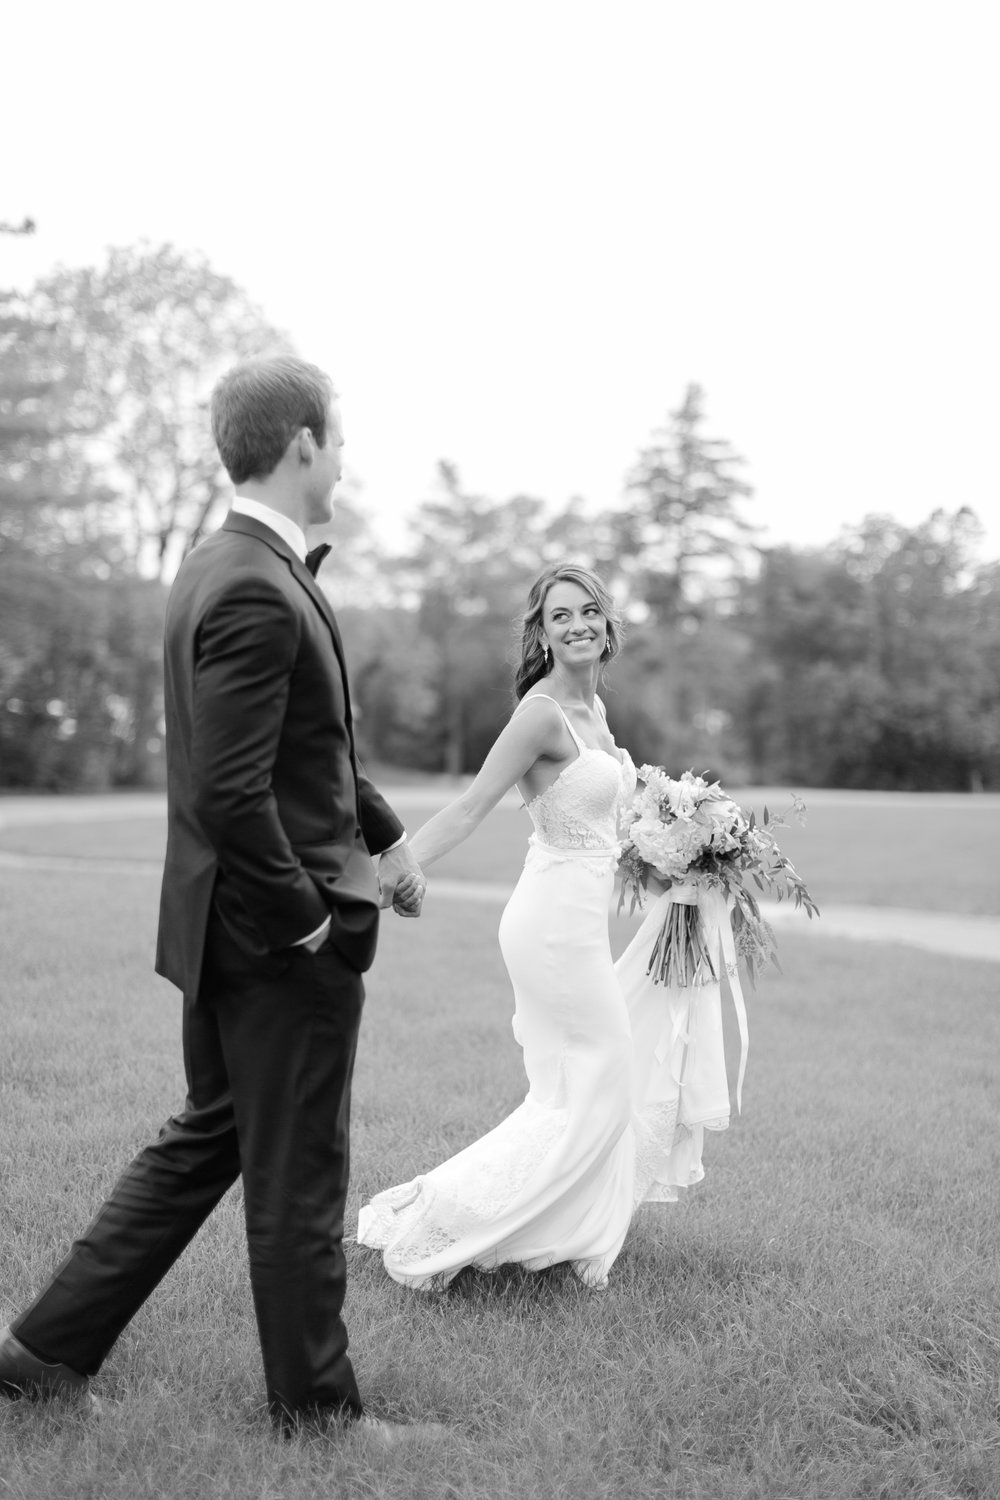 best-toronto-wedding-photographer-langdon-hall-eagles-nest-richelle-hunter-paris-france-olivia-mark-776.jpg